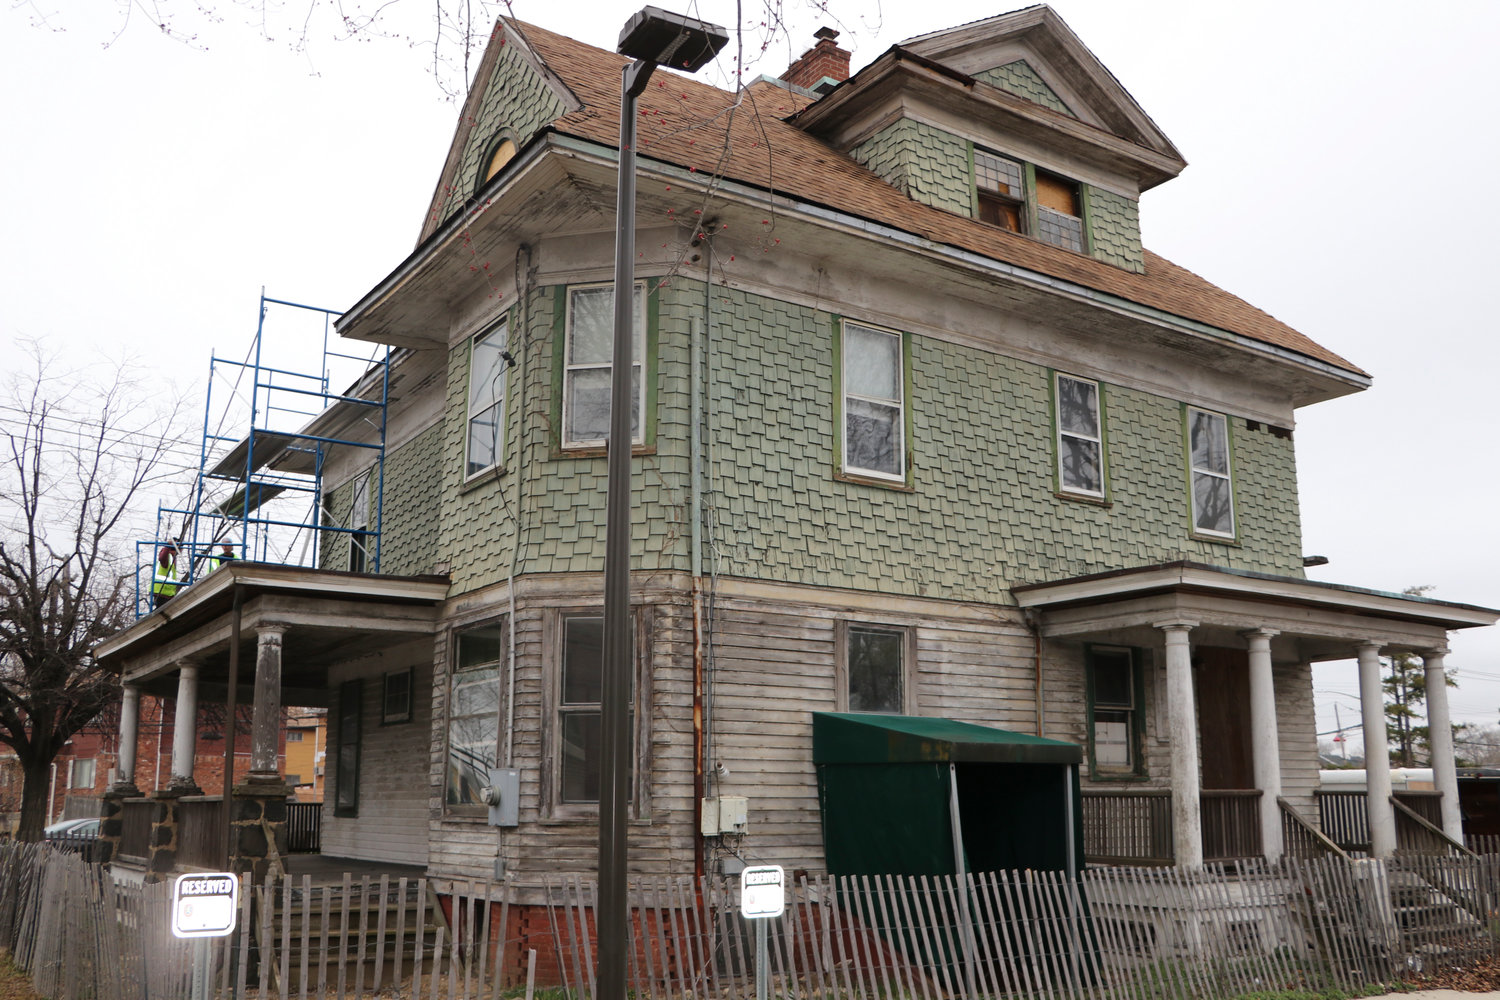 County workers began removing the roof of Baldwin's historic Kellogg House to replace it with a new, historically accurate one. The work marks the start of the house's long-awaited restoration.